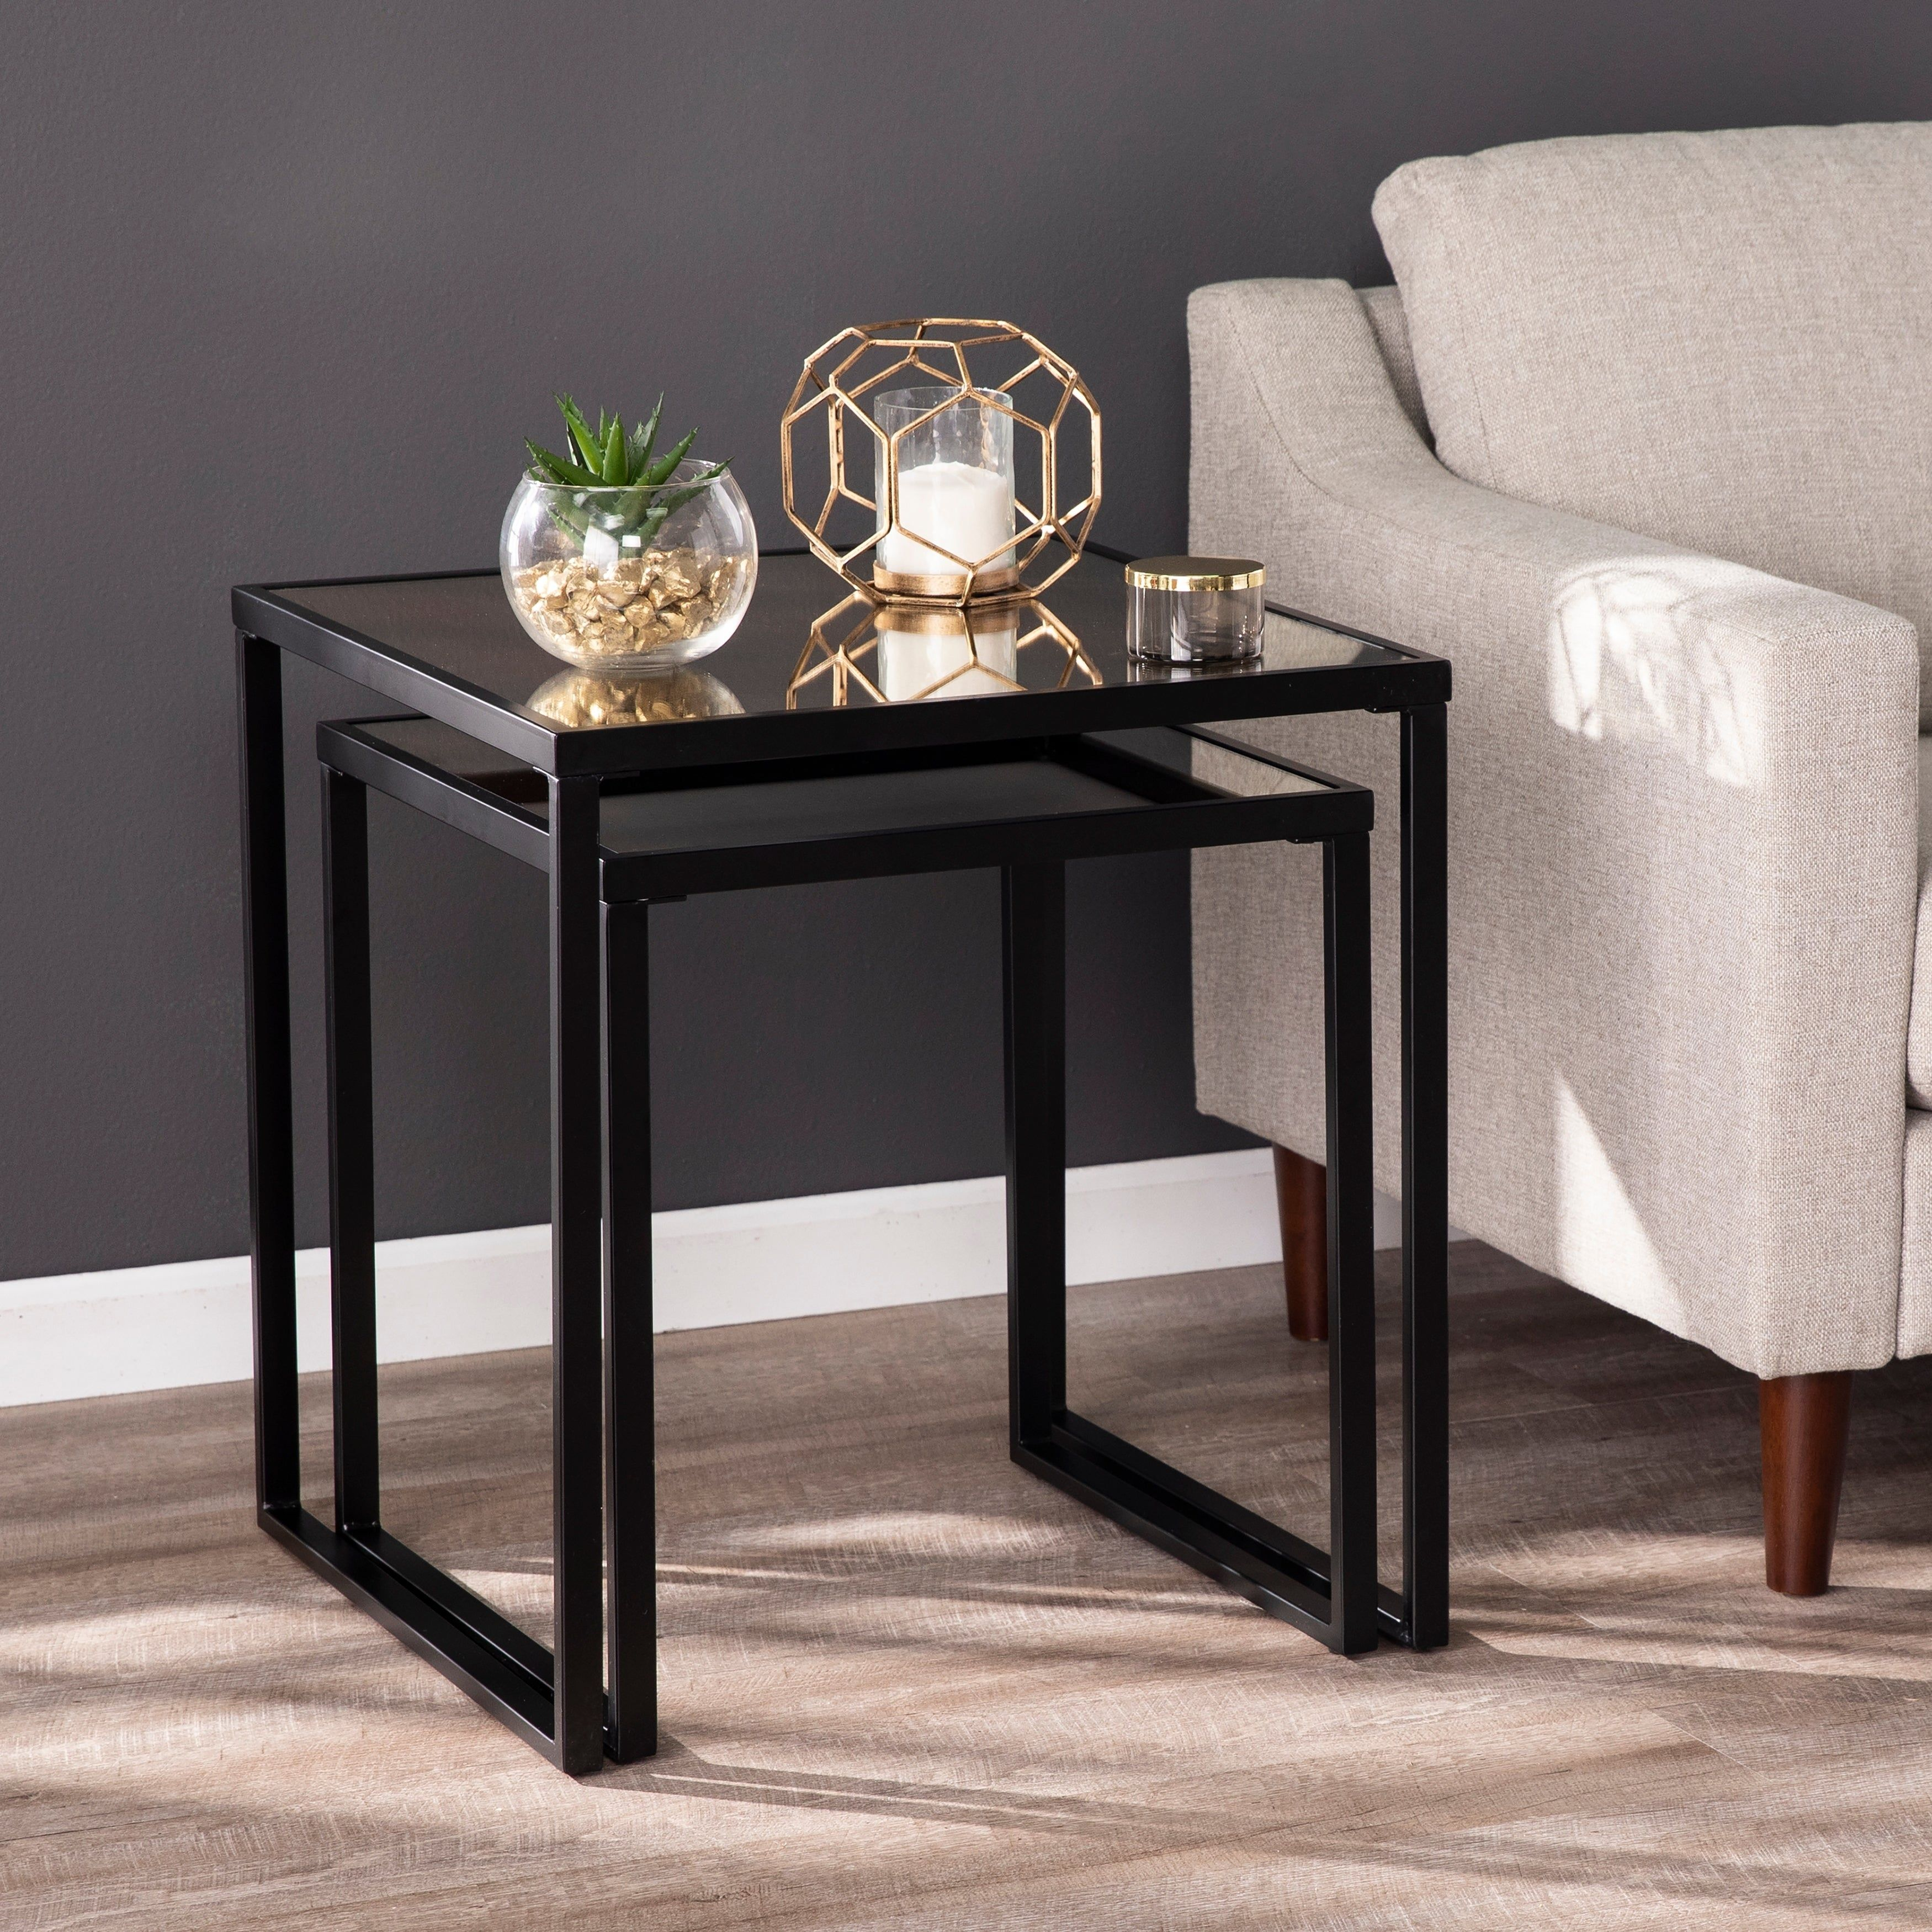 Overstock Com Online Shopping Bedding Furniture Electronics Jewelry Clothing More Mirrored End Table Black Side Table Living Room End Table Sets